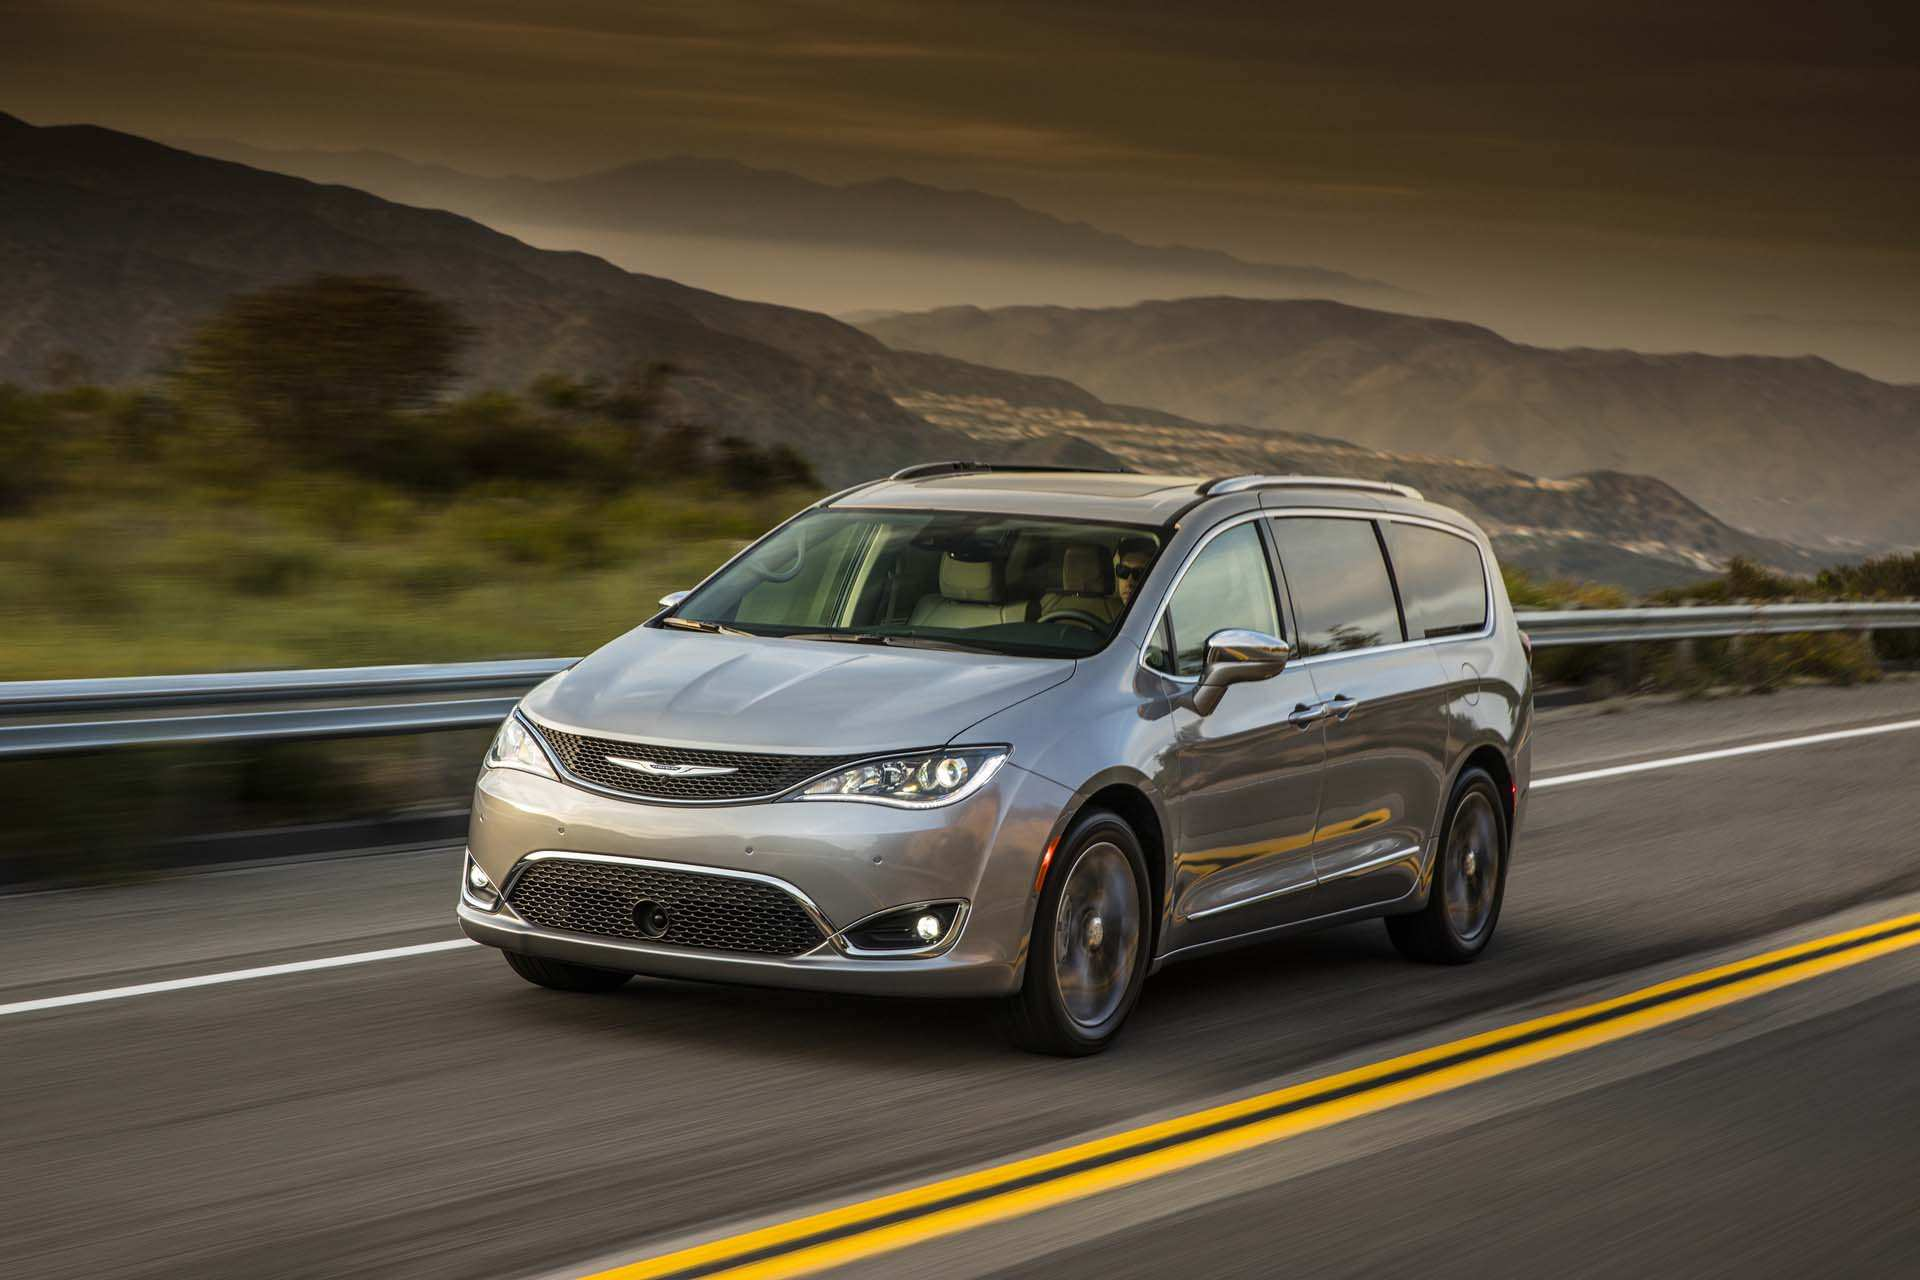 66 The Best 2019 Chrysler Pacifica Review Picture